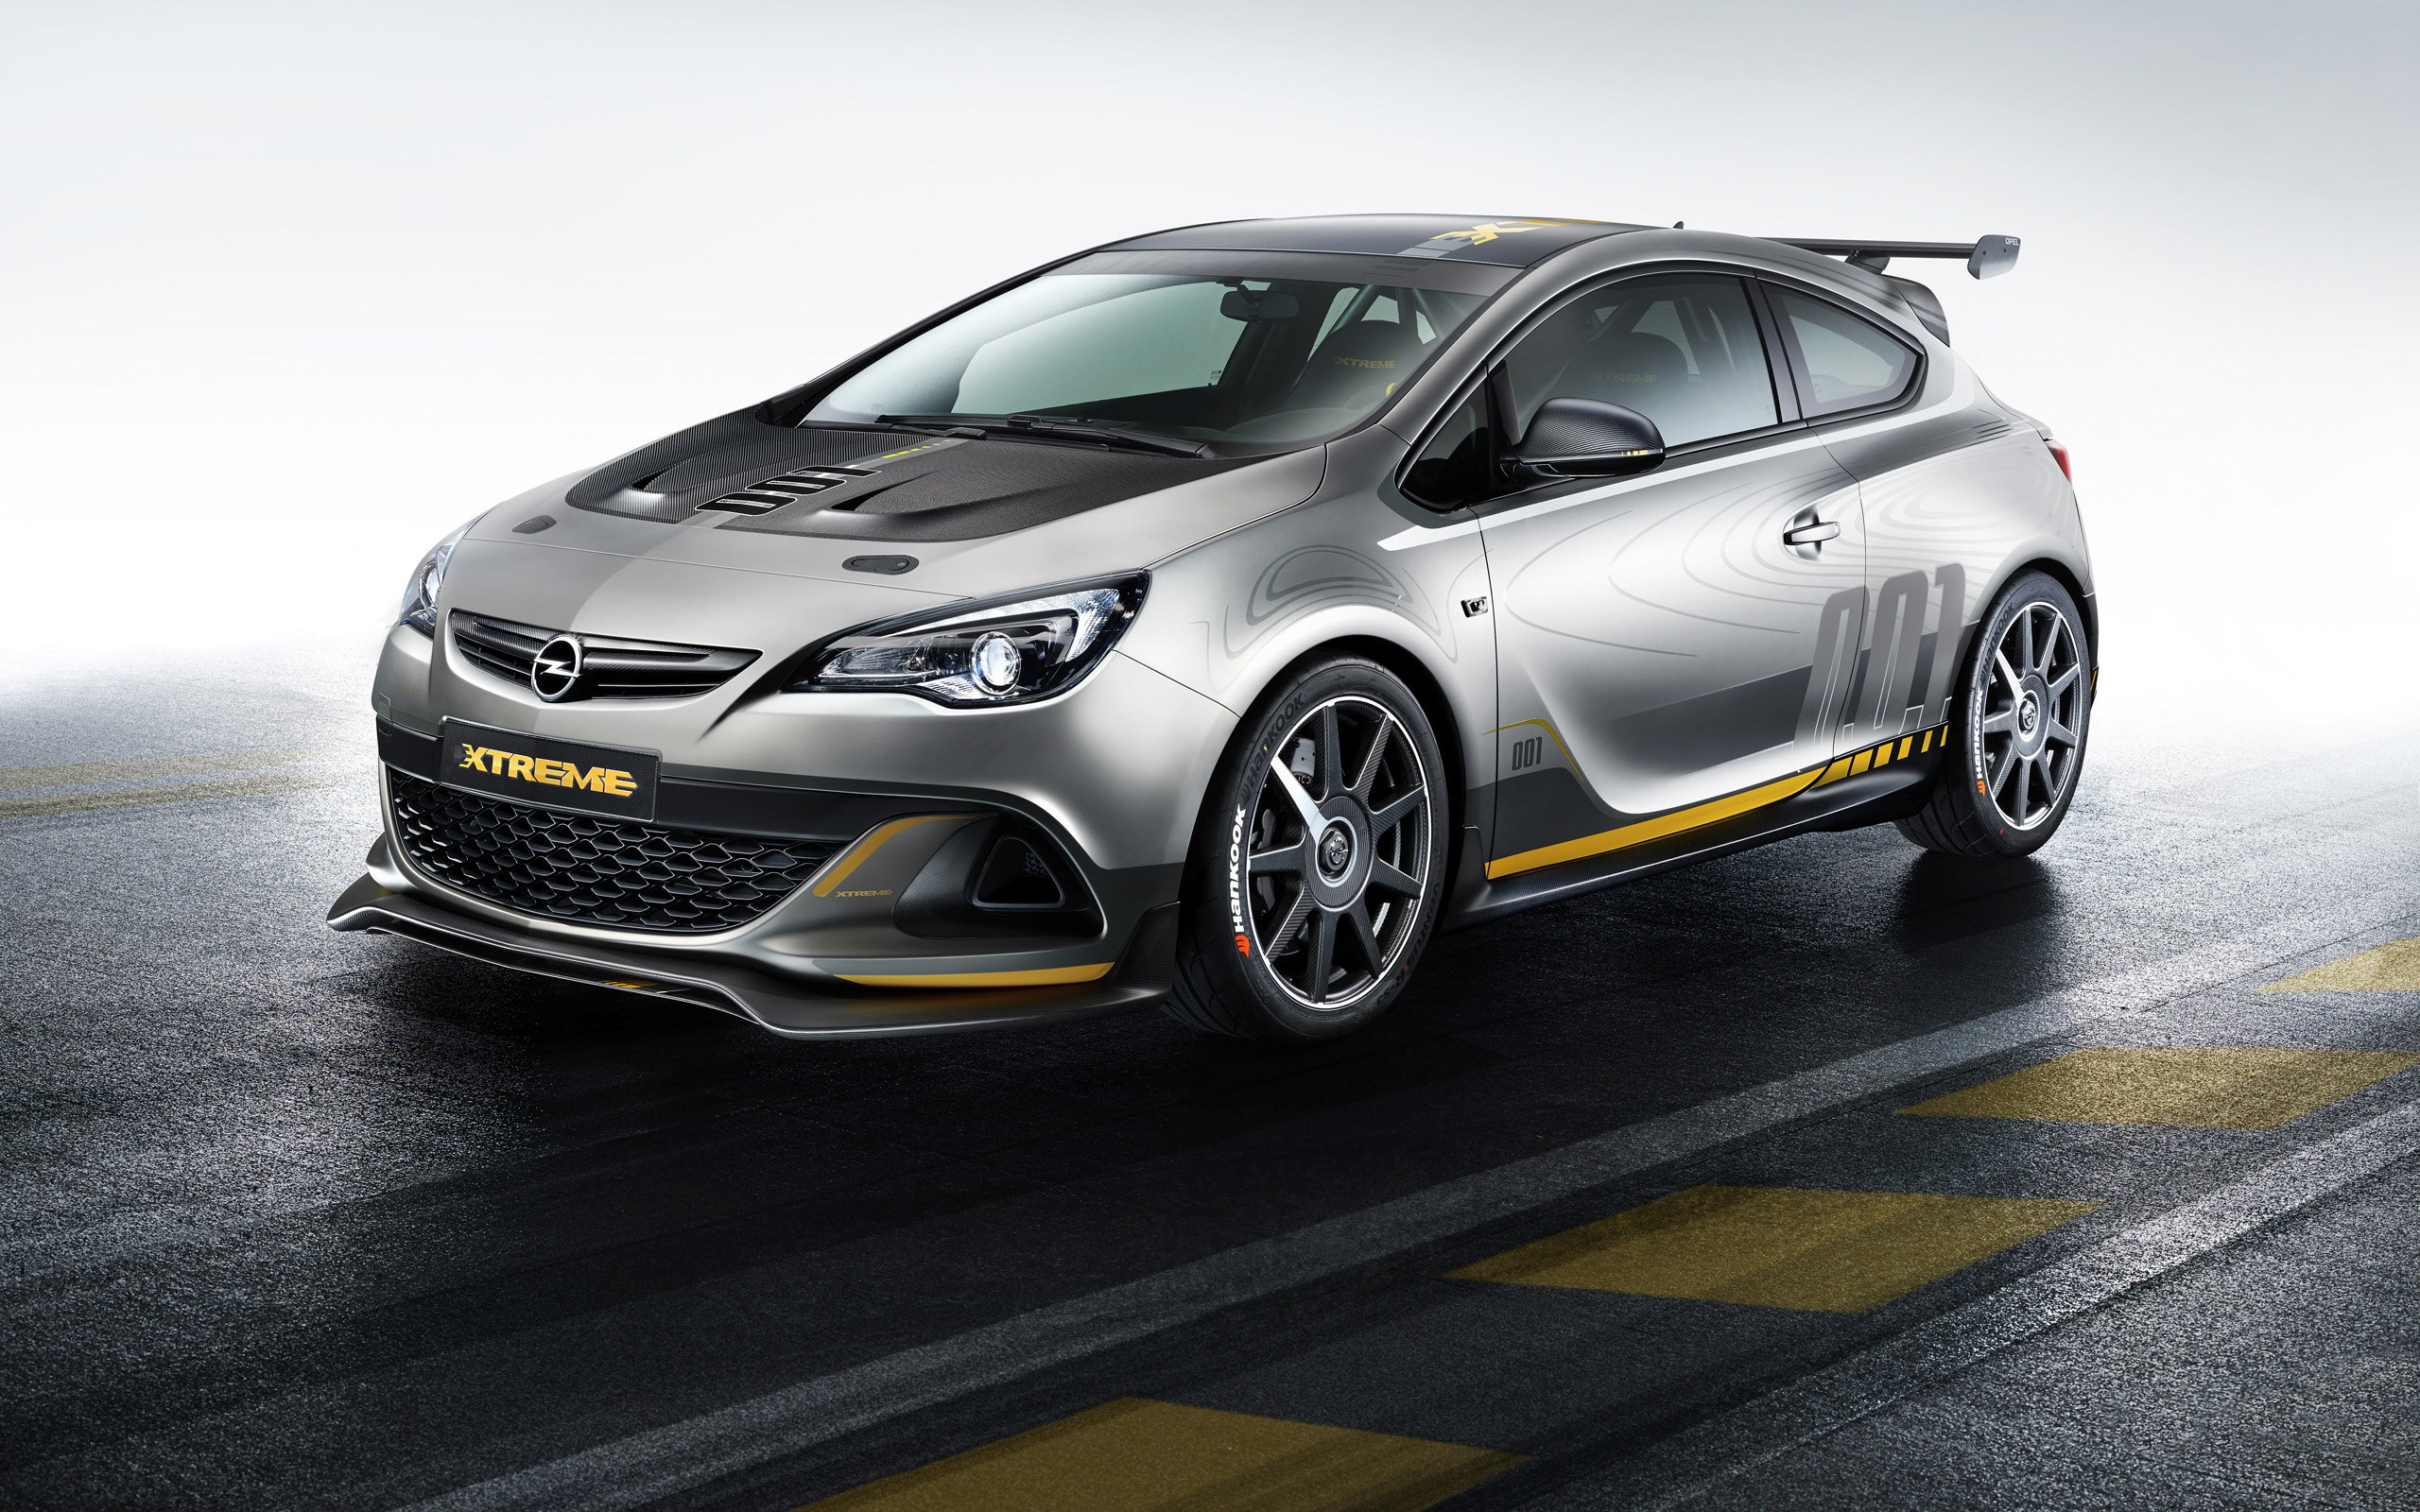 2014 Opel Astra Opc Extreme Wallpaper Hd Car Wallpapers Id 4220